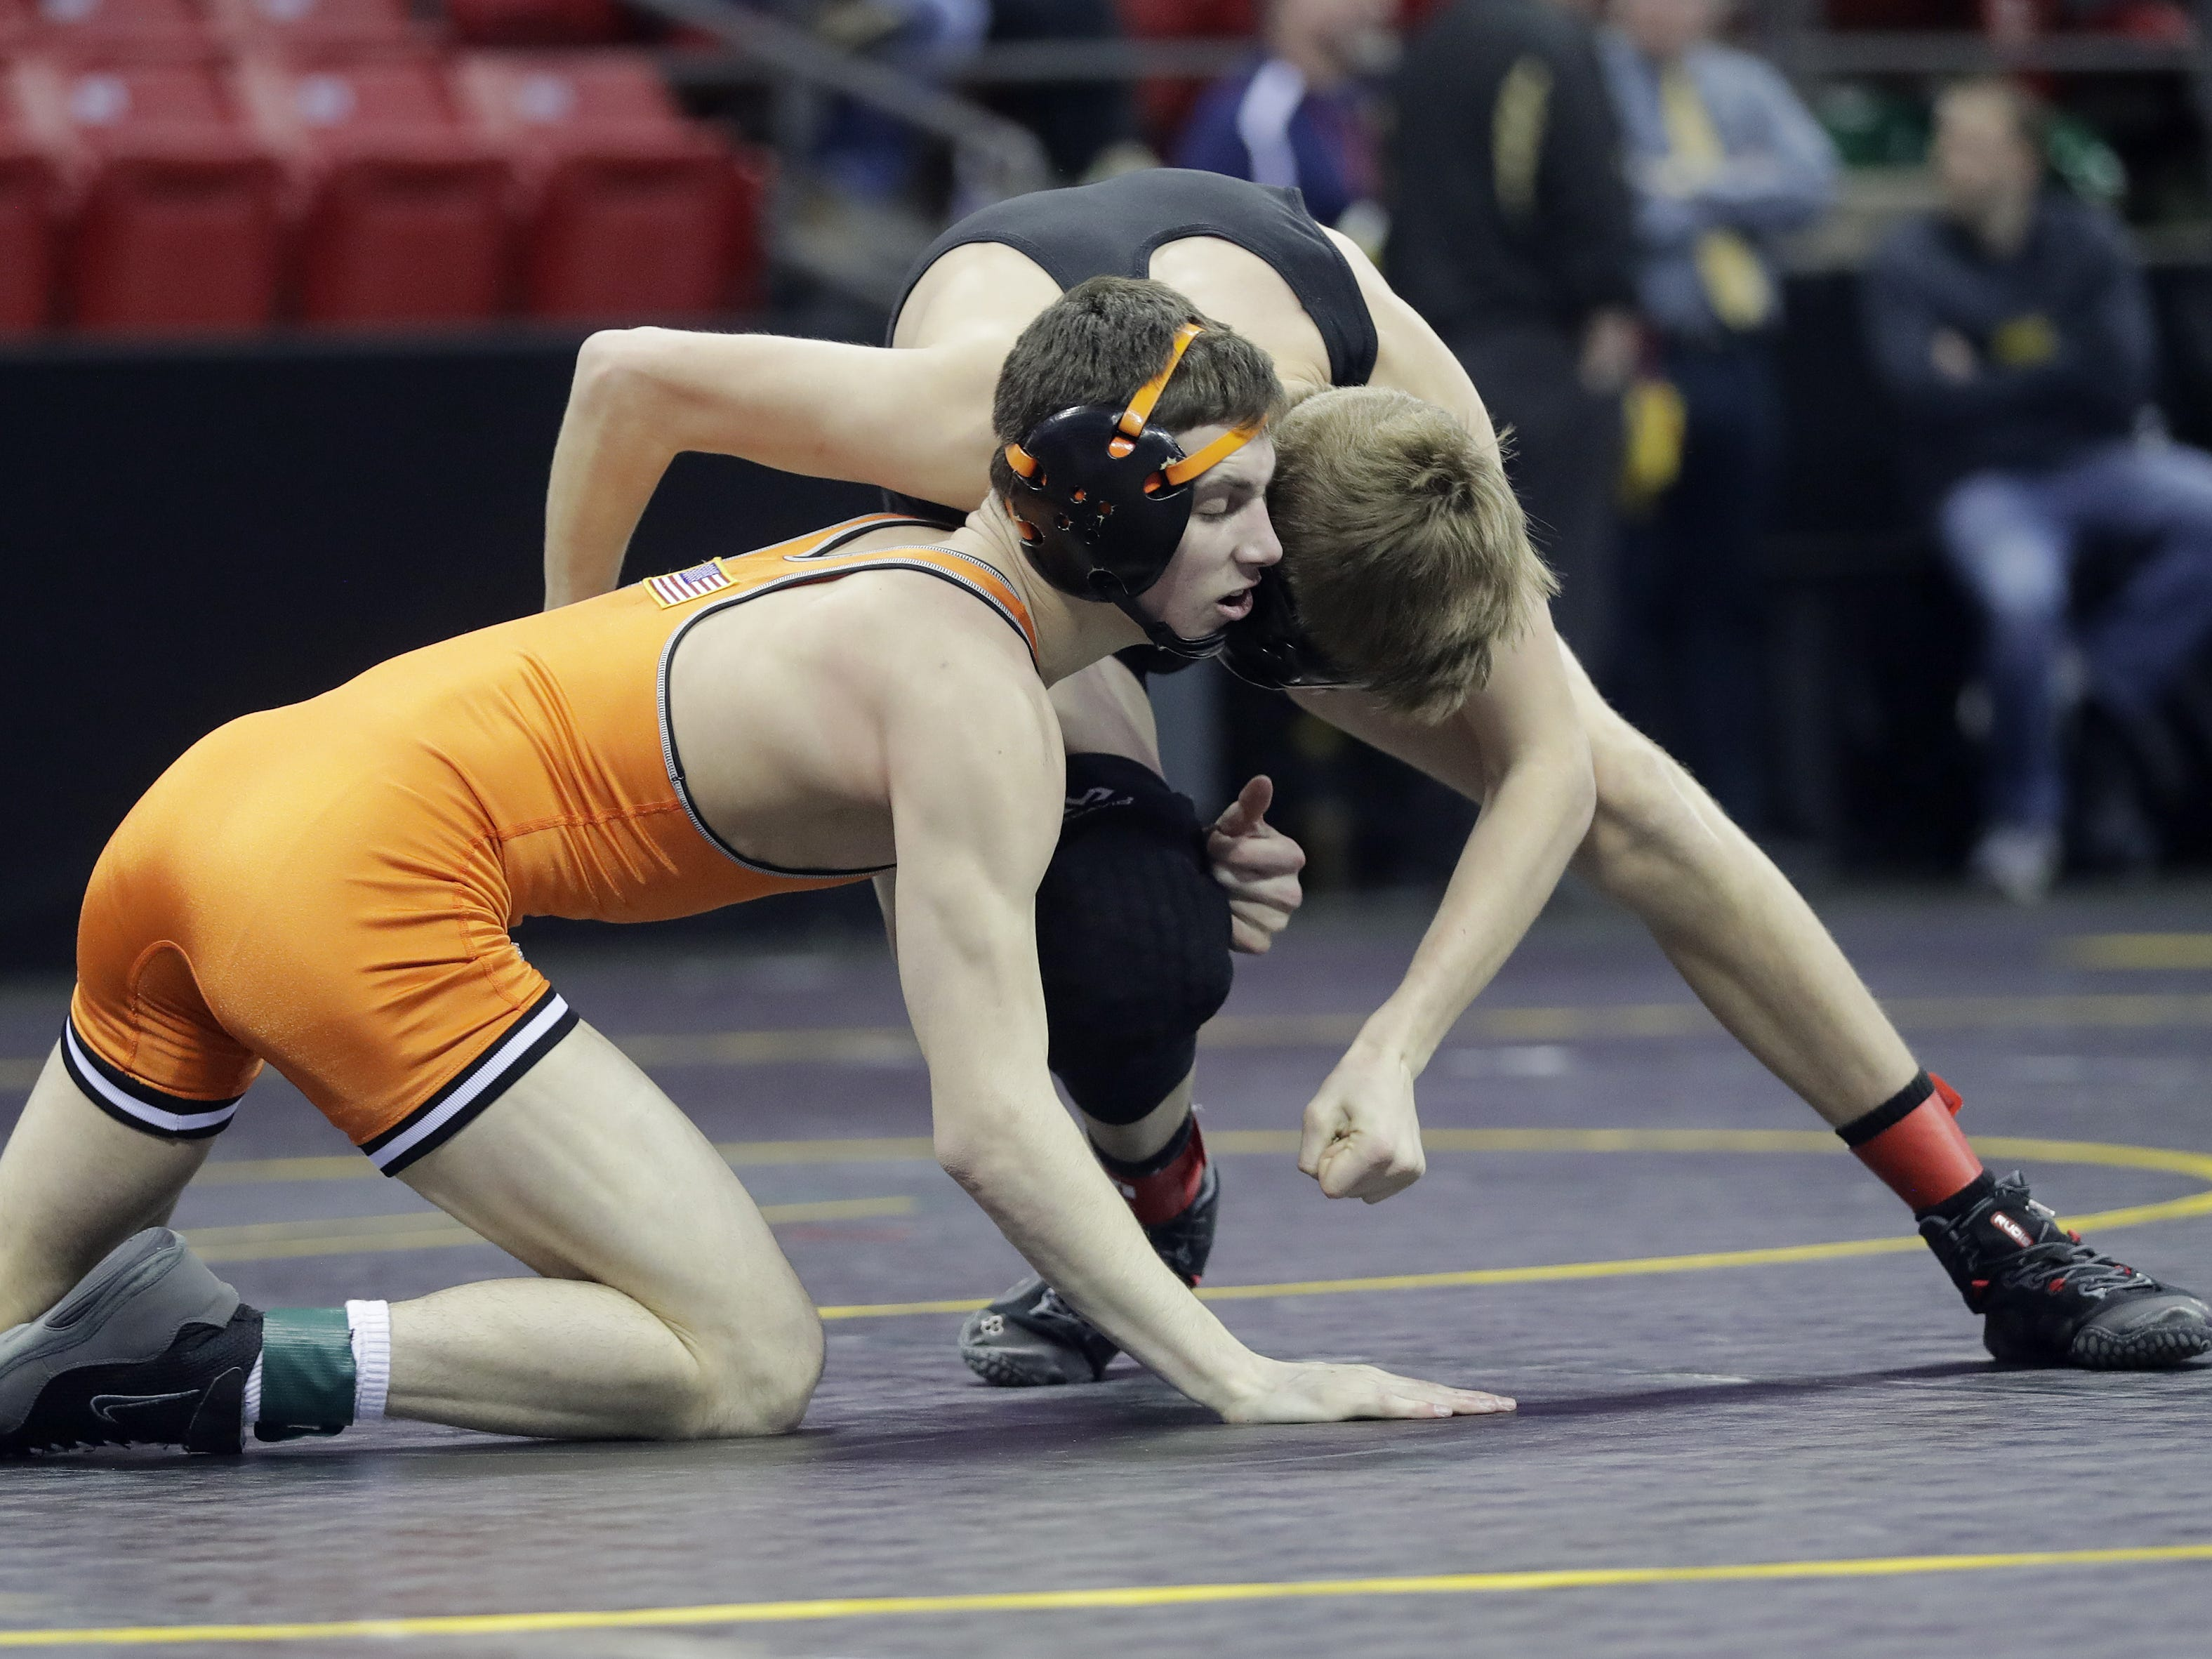 Kaukauna's Mason Campshure wrestles in a Division 1 120-pound preliminary match at the WIAA state individual wrestling tournament at the Kohl Center on Thursday, February 21, 2019 in Madison, Wis. Adam Wesley/USA TODAY NETWORK-Wisconsin